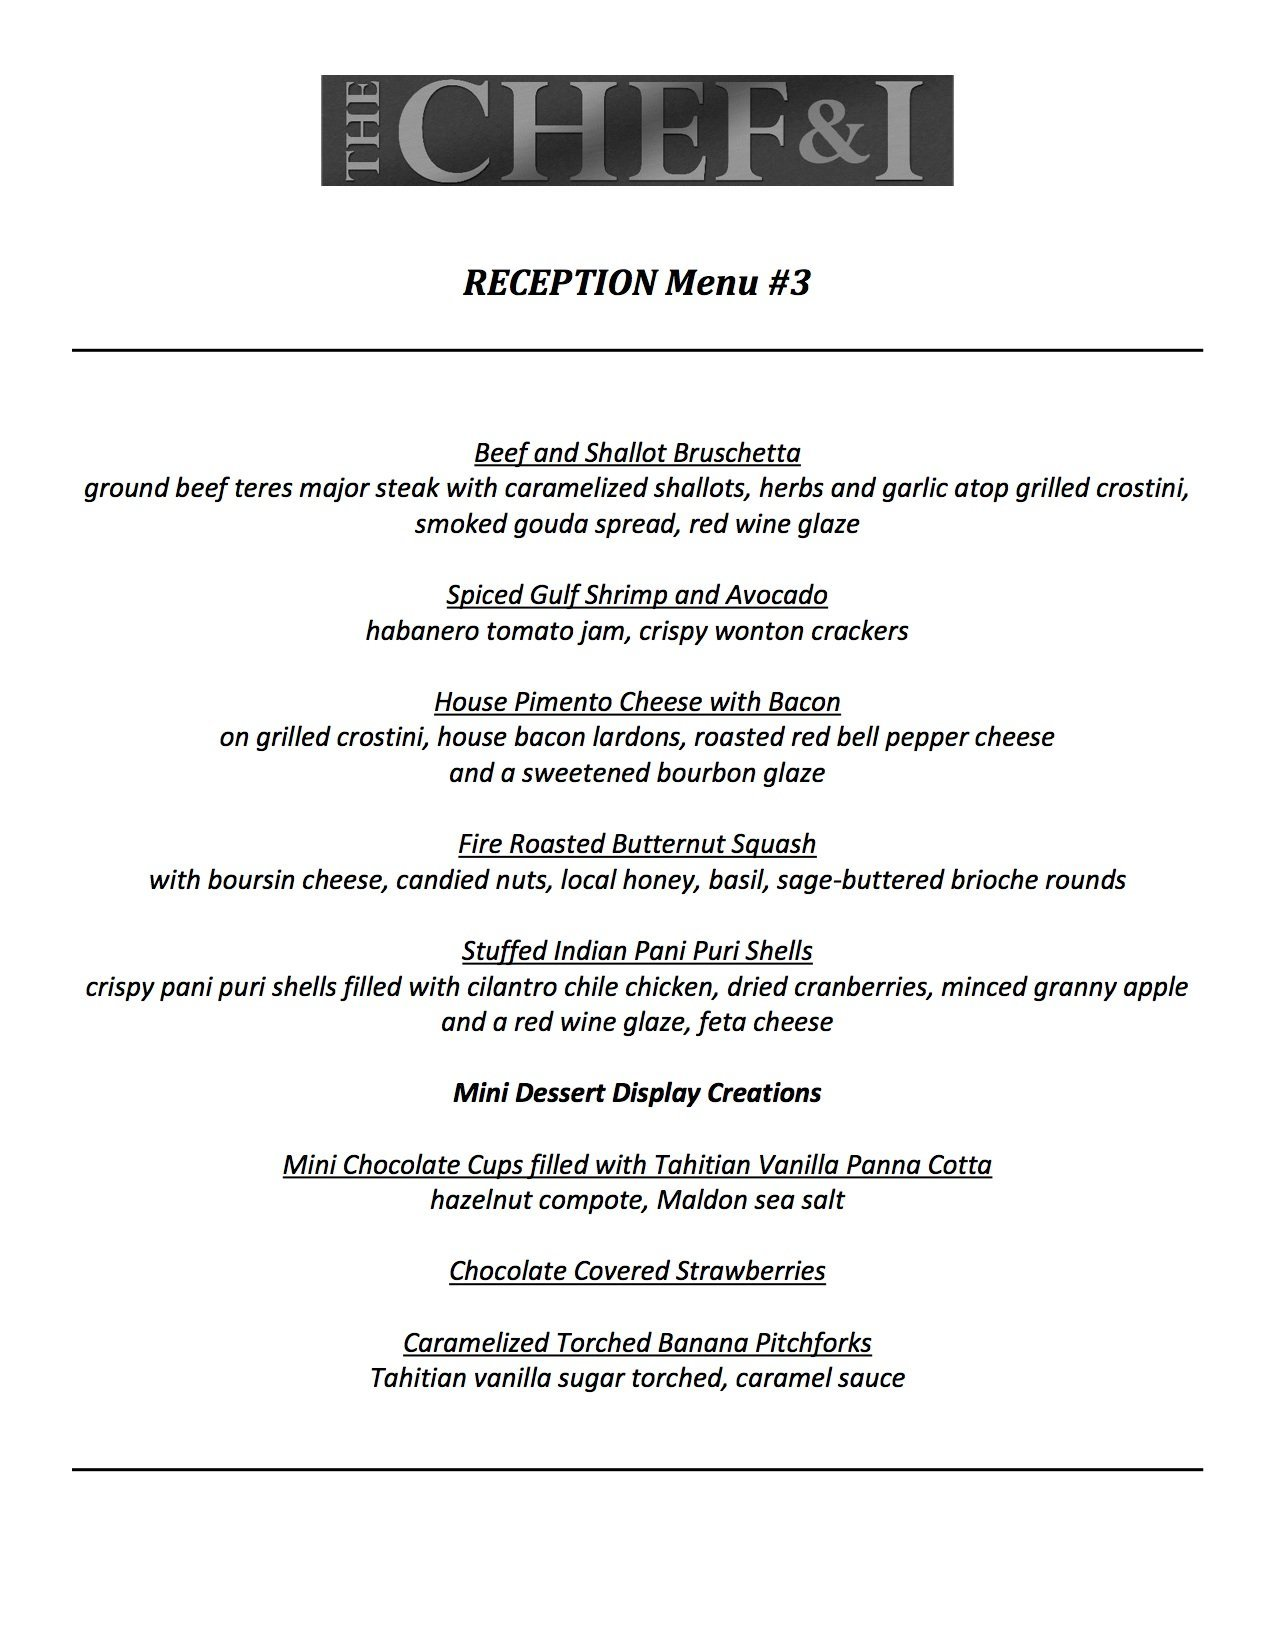 Reception Menu 3